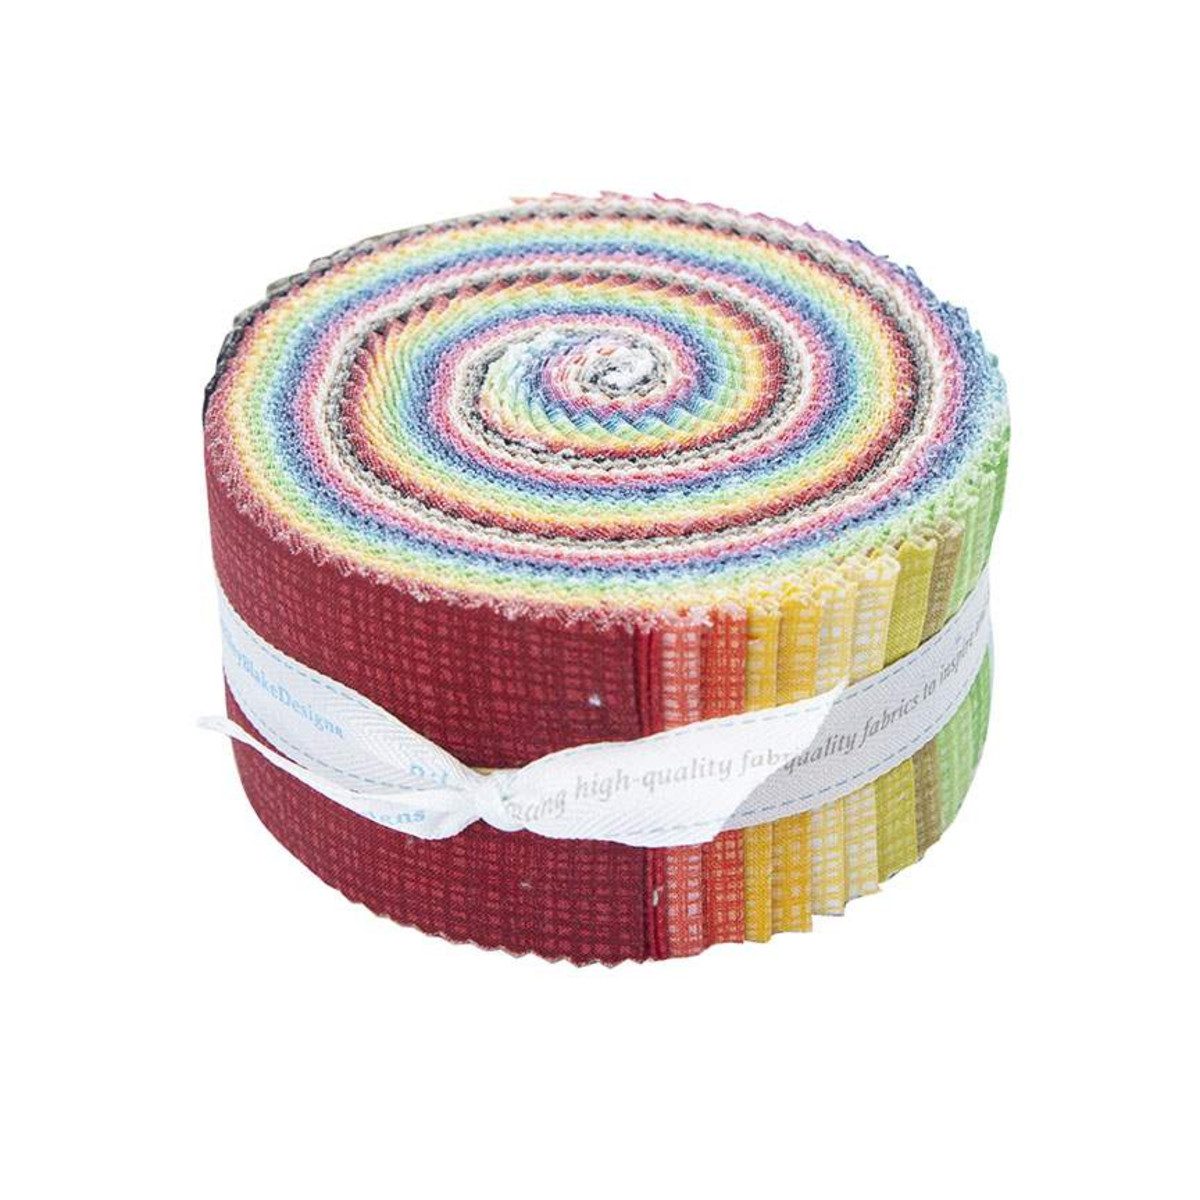 Riley Blake Jelly Roll - Texture